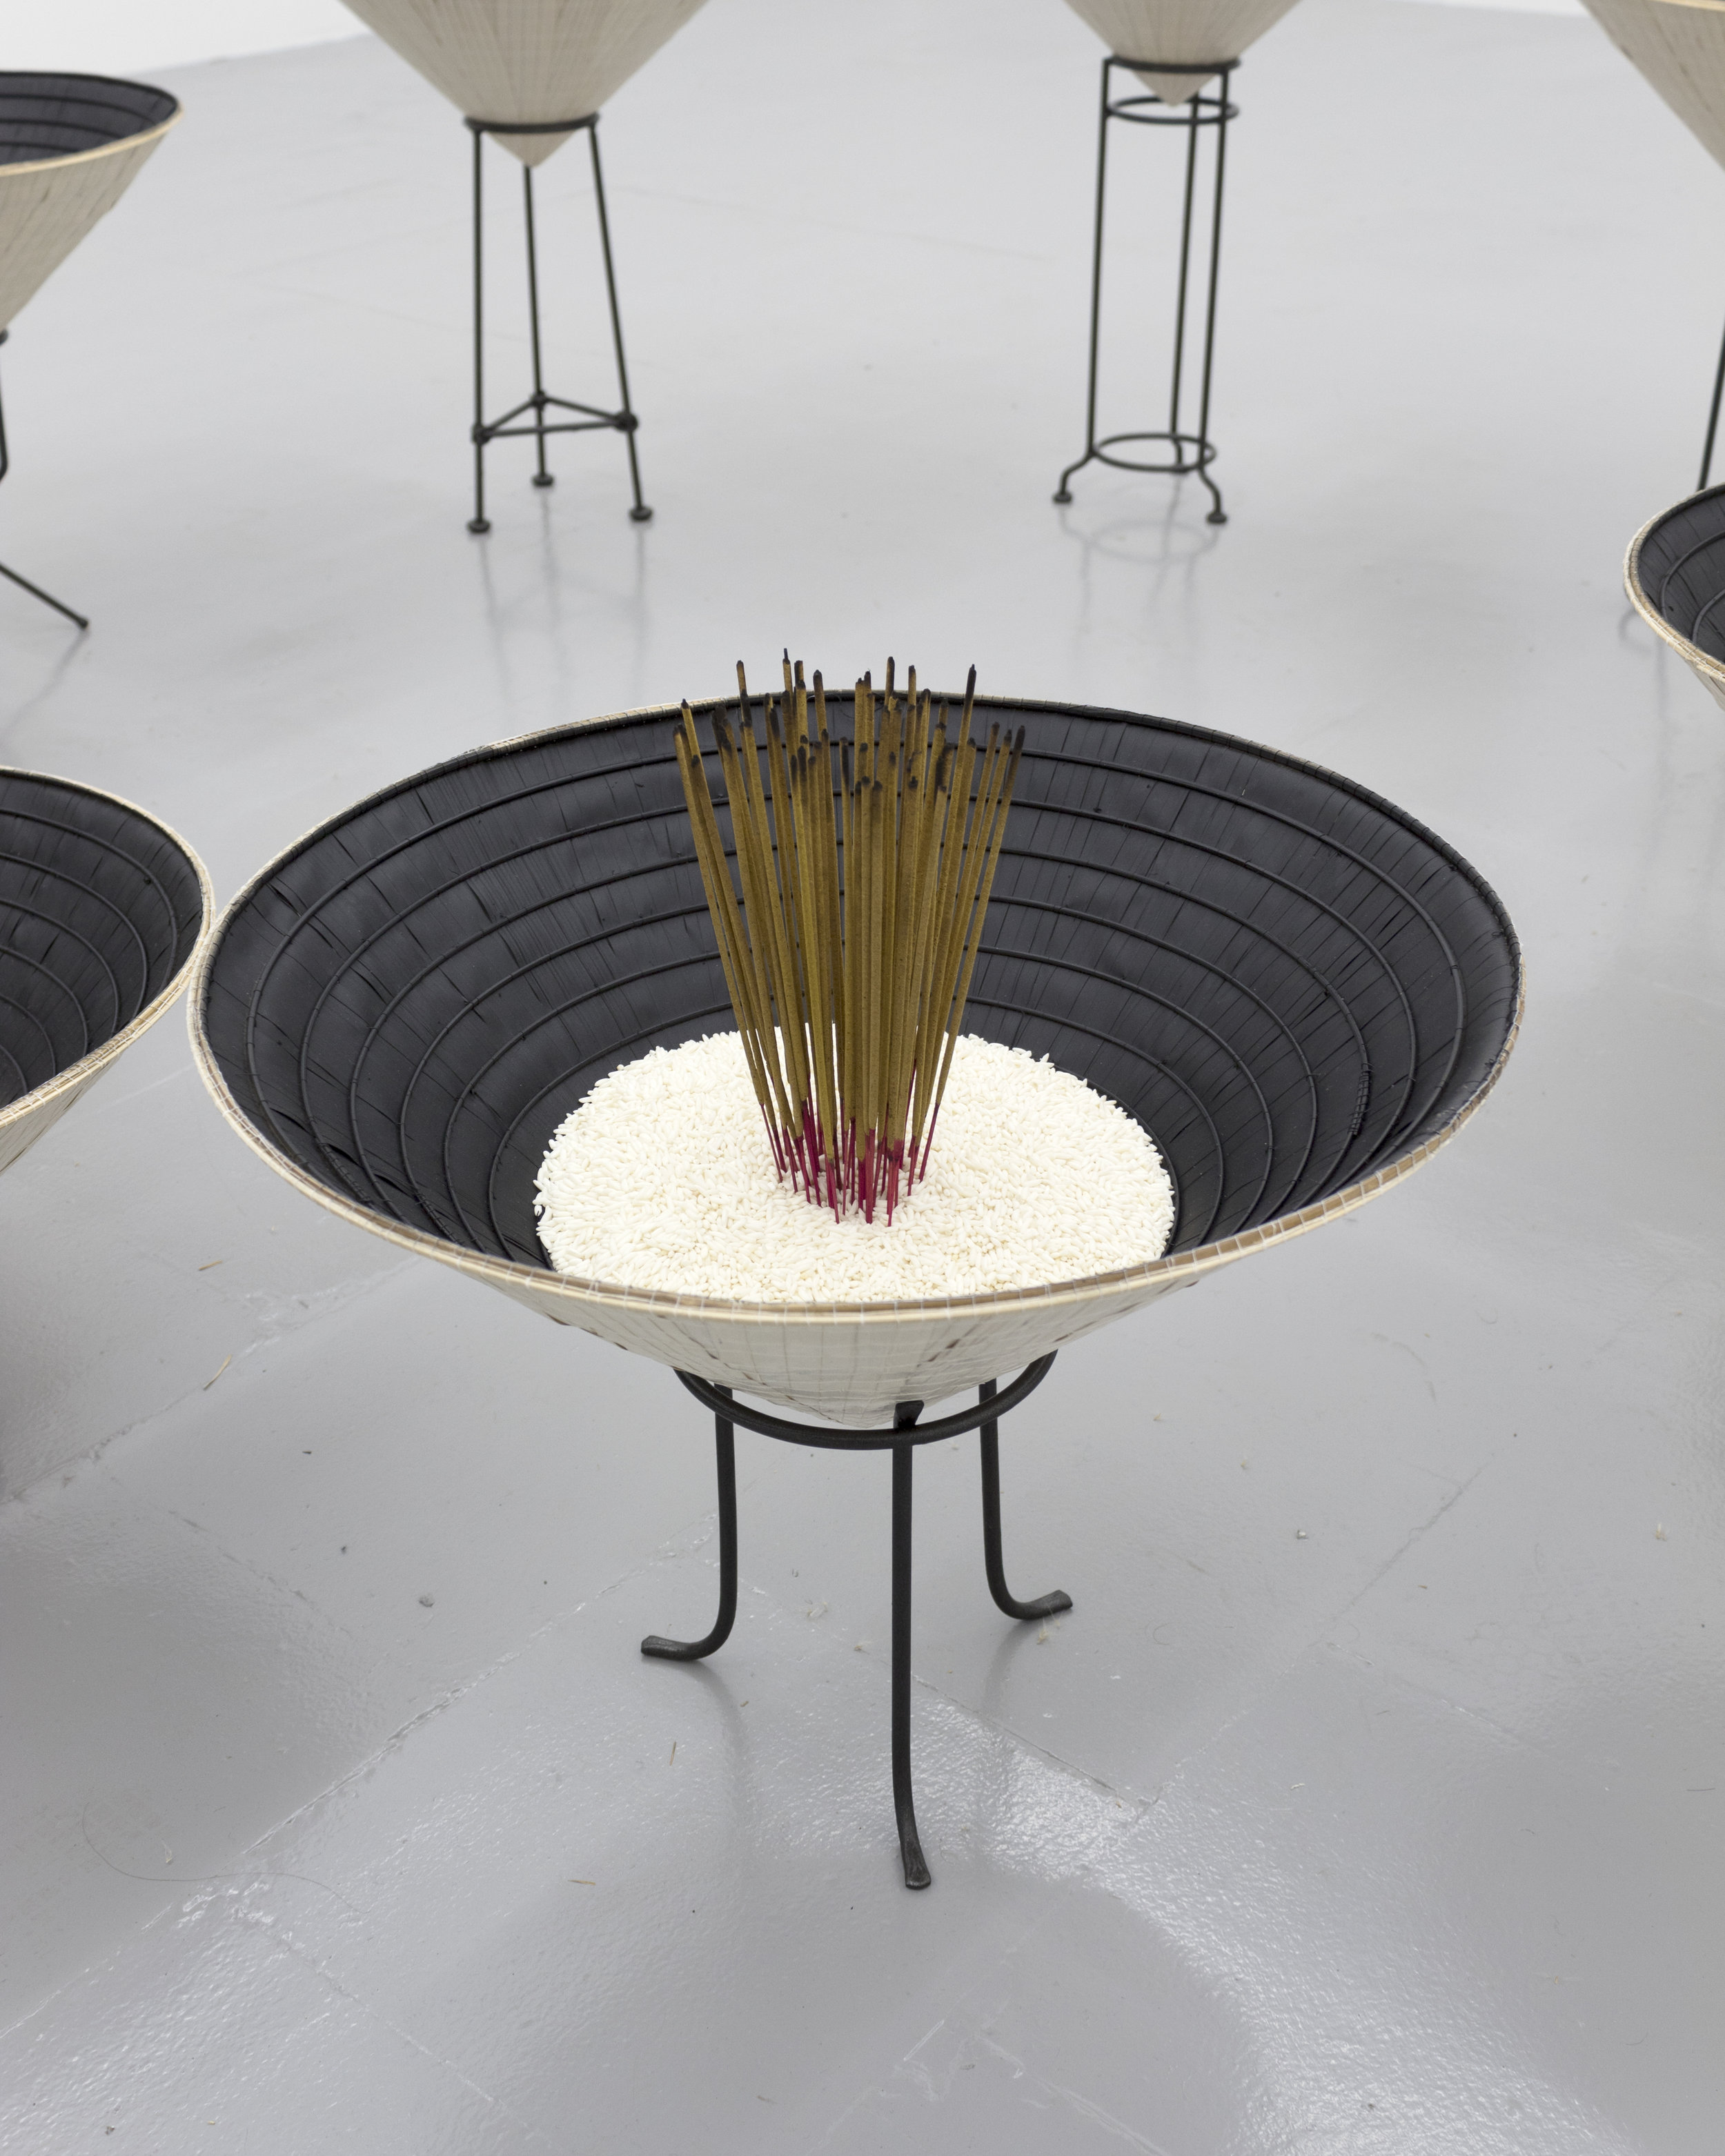 Millian Giang Lien Pham,  Reforge: 9 Phases (Two),  2019. Conical hat, sweet rice, incense, metal stand